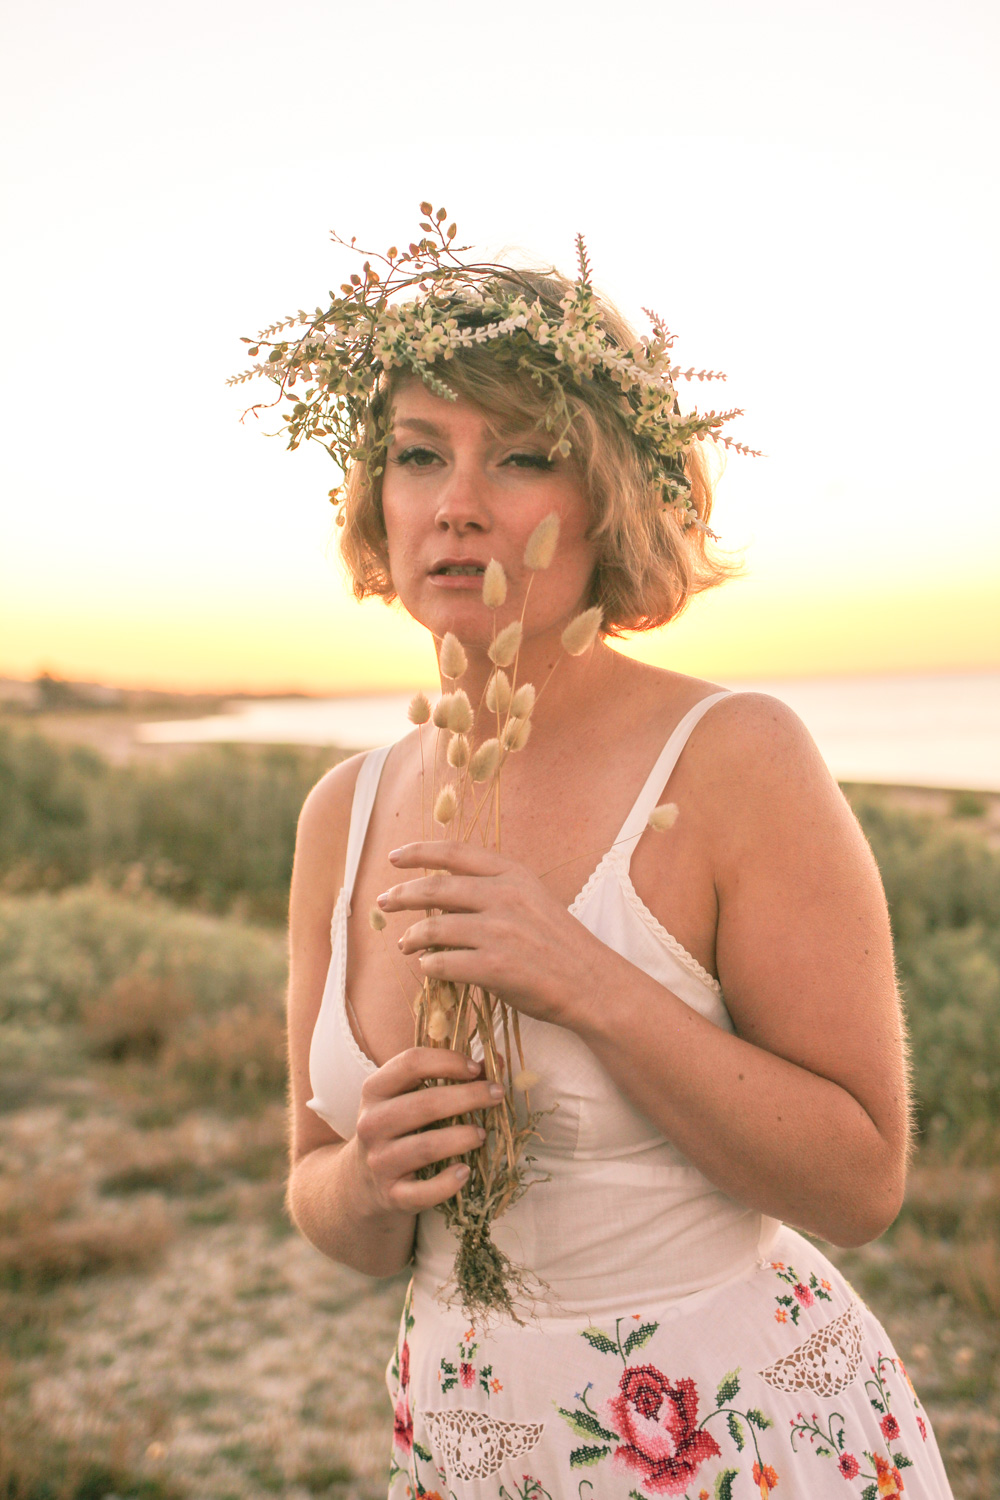 @findingfemme in a twiggy flower crown and cross stitched dress at the beach.